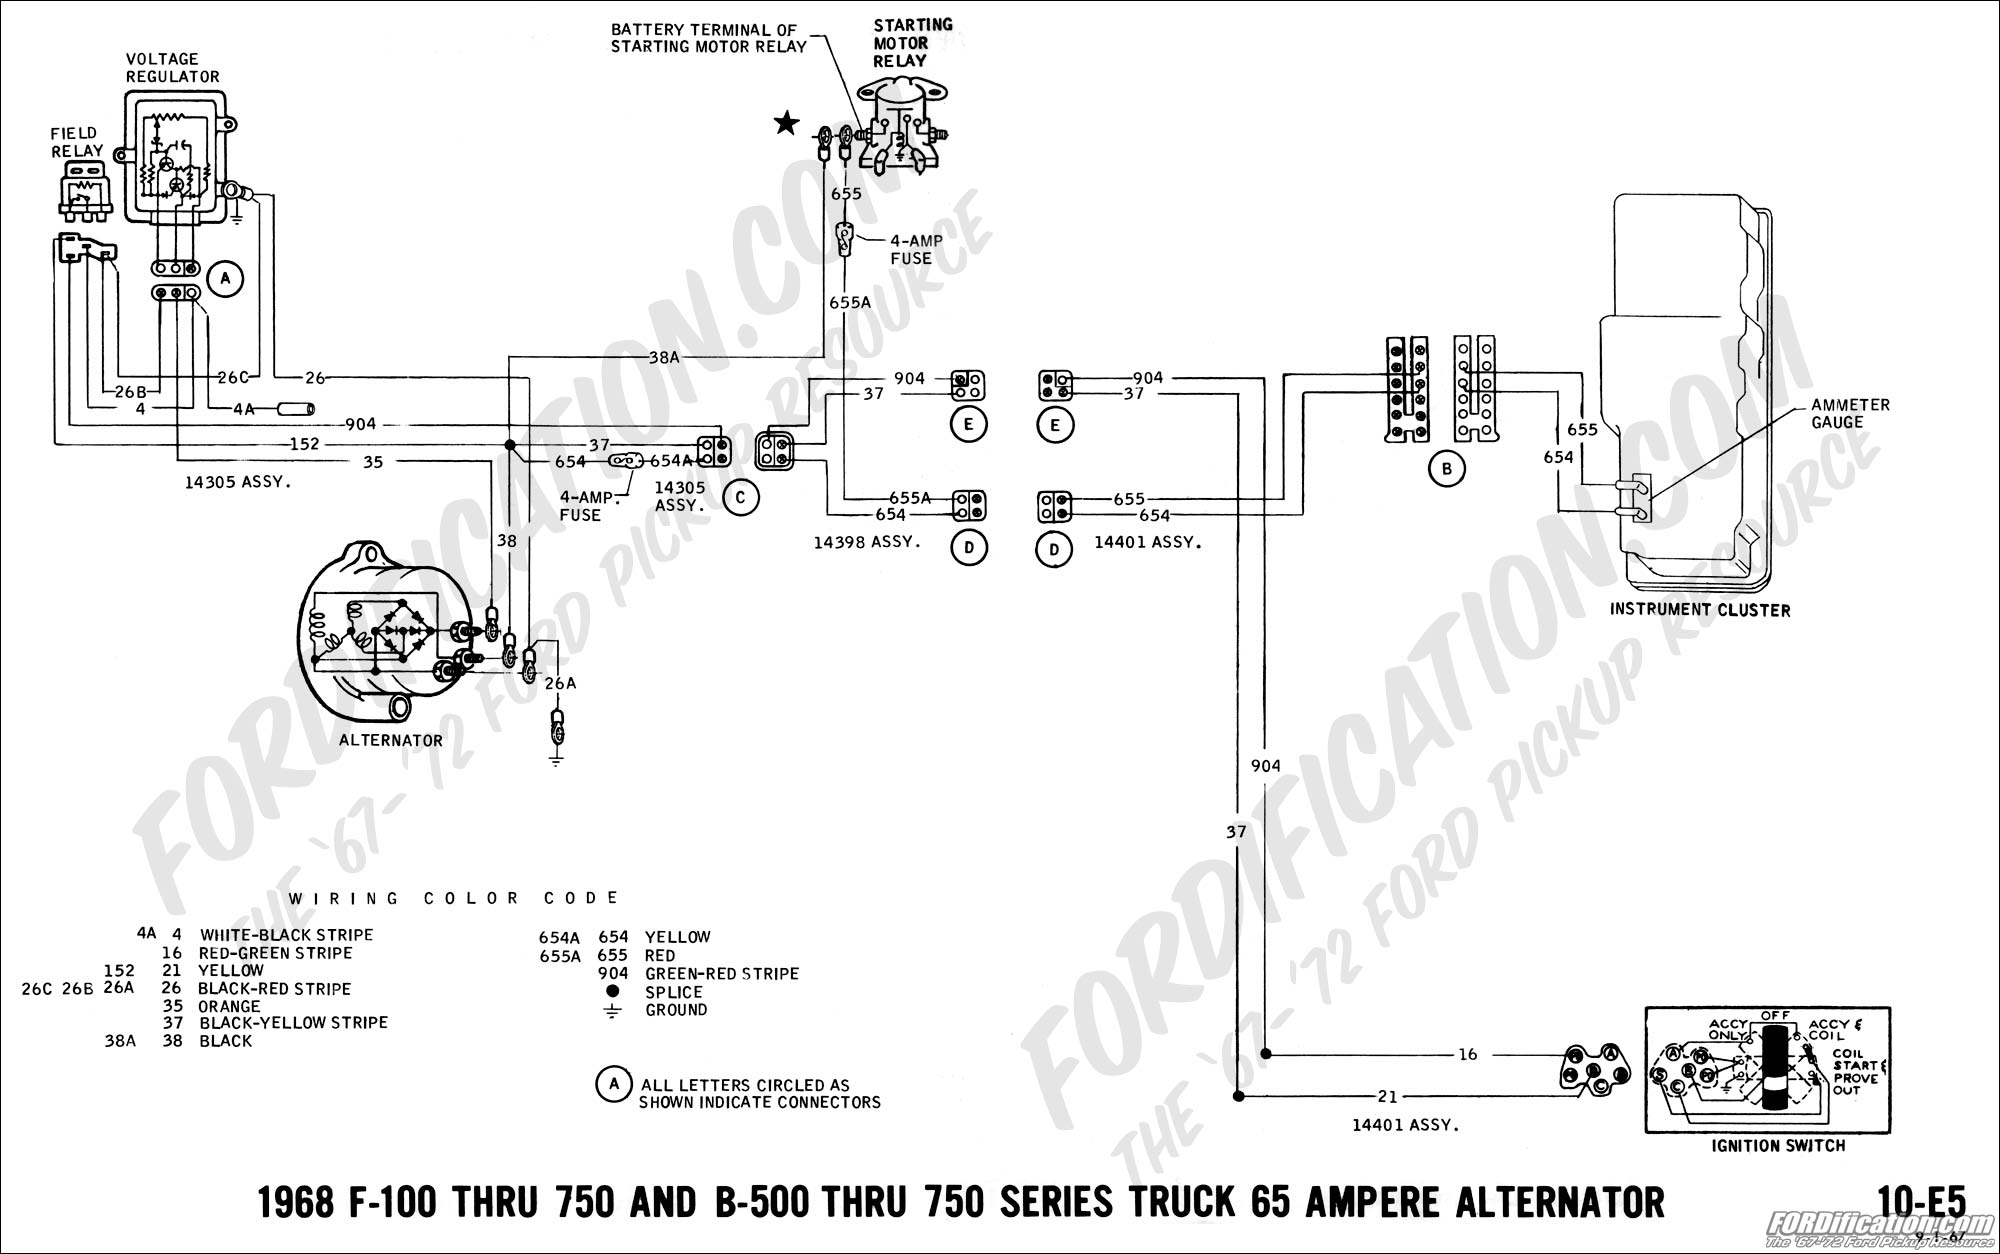 1966 Ford F100 Alternator Wiring Diagram Blog 1964 F 100 Diagrams 1965